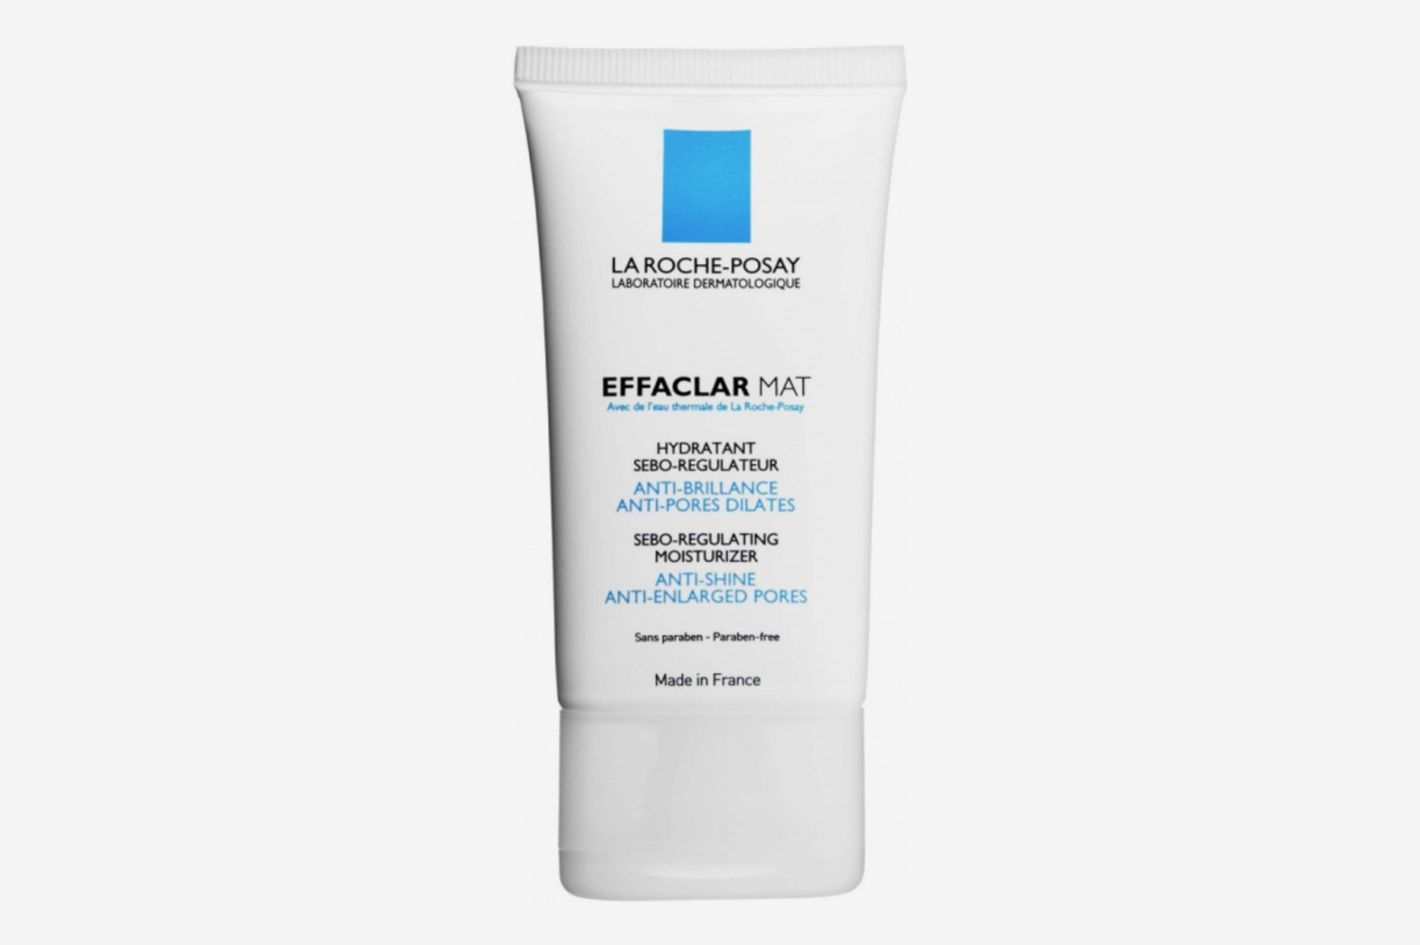 La Roche Posay Effaclar Mat Anti-Shine Face Moisturizer for Oily Skin